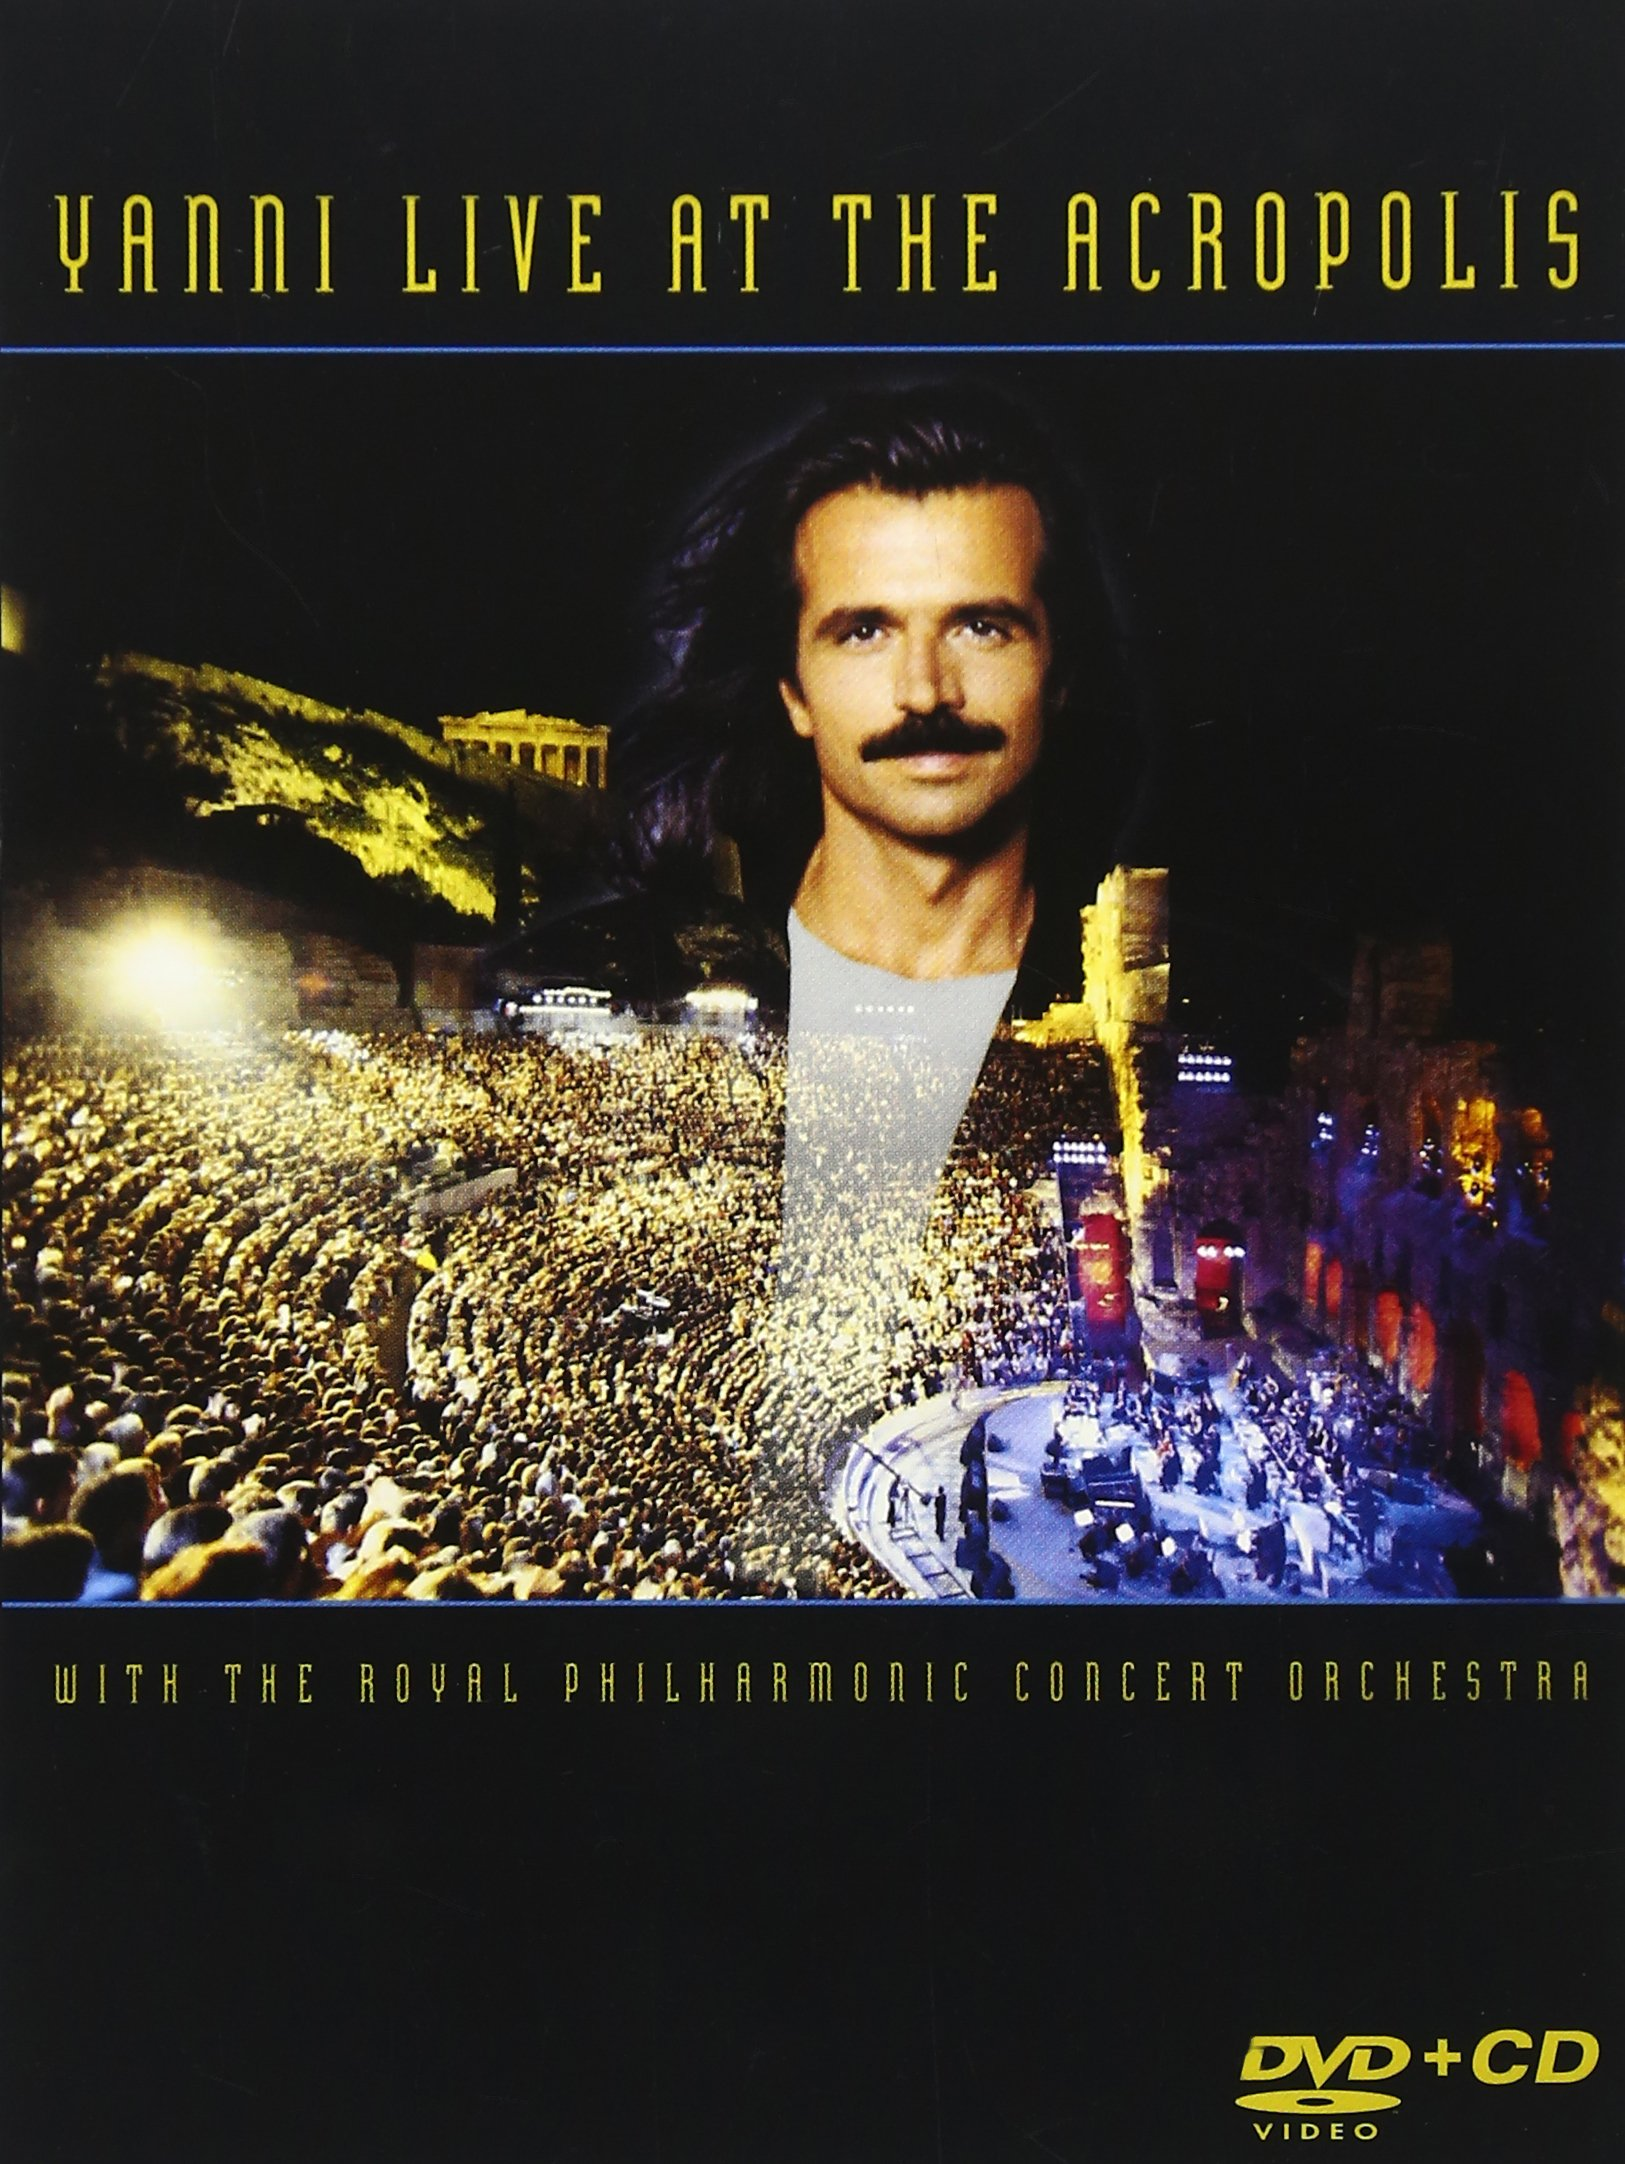 Yanni Live At The Acropolis by EMD